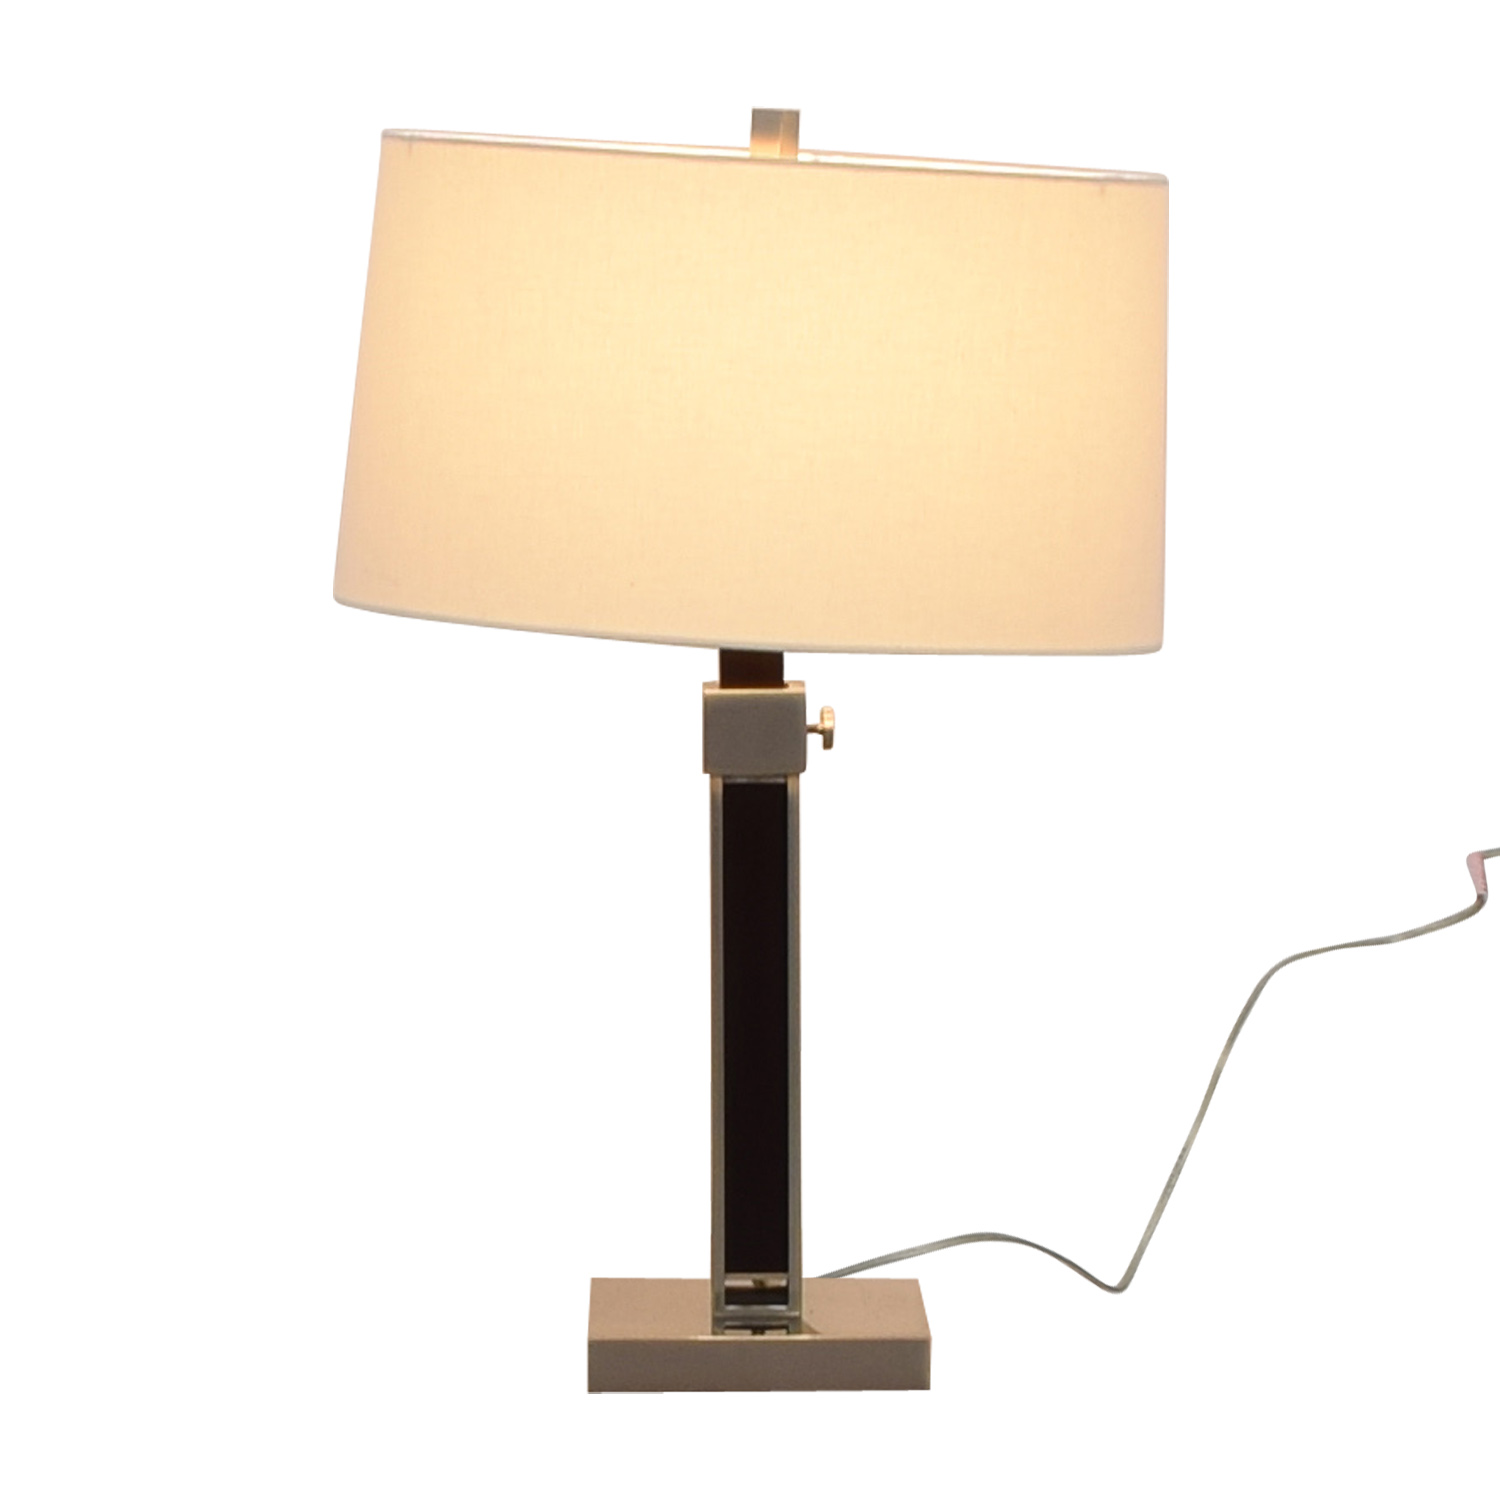 Crate & Barrel Crate & Barrel Denley Table Lamp used